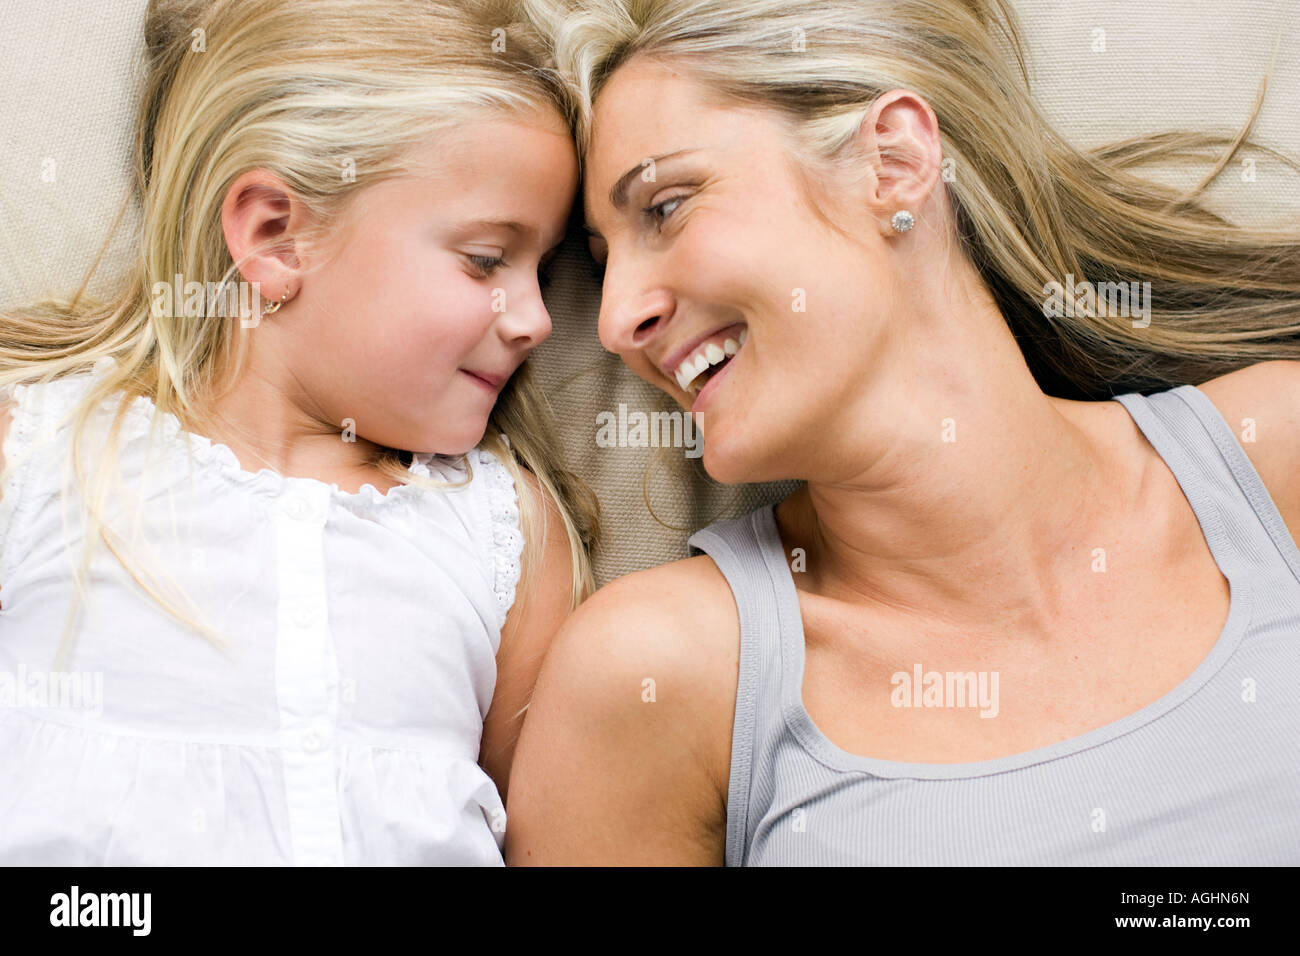 mother and daughter lying down smiling at eachother - Stock Image